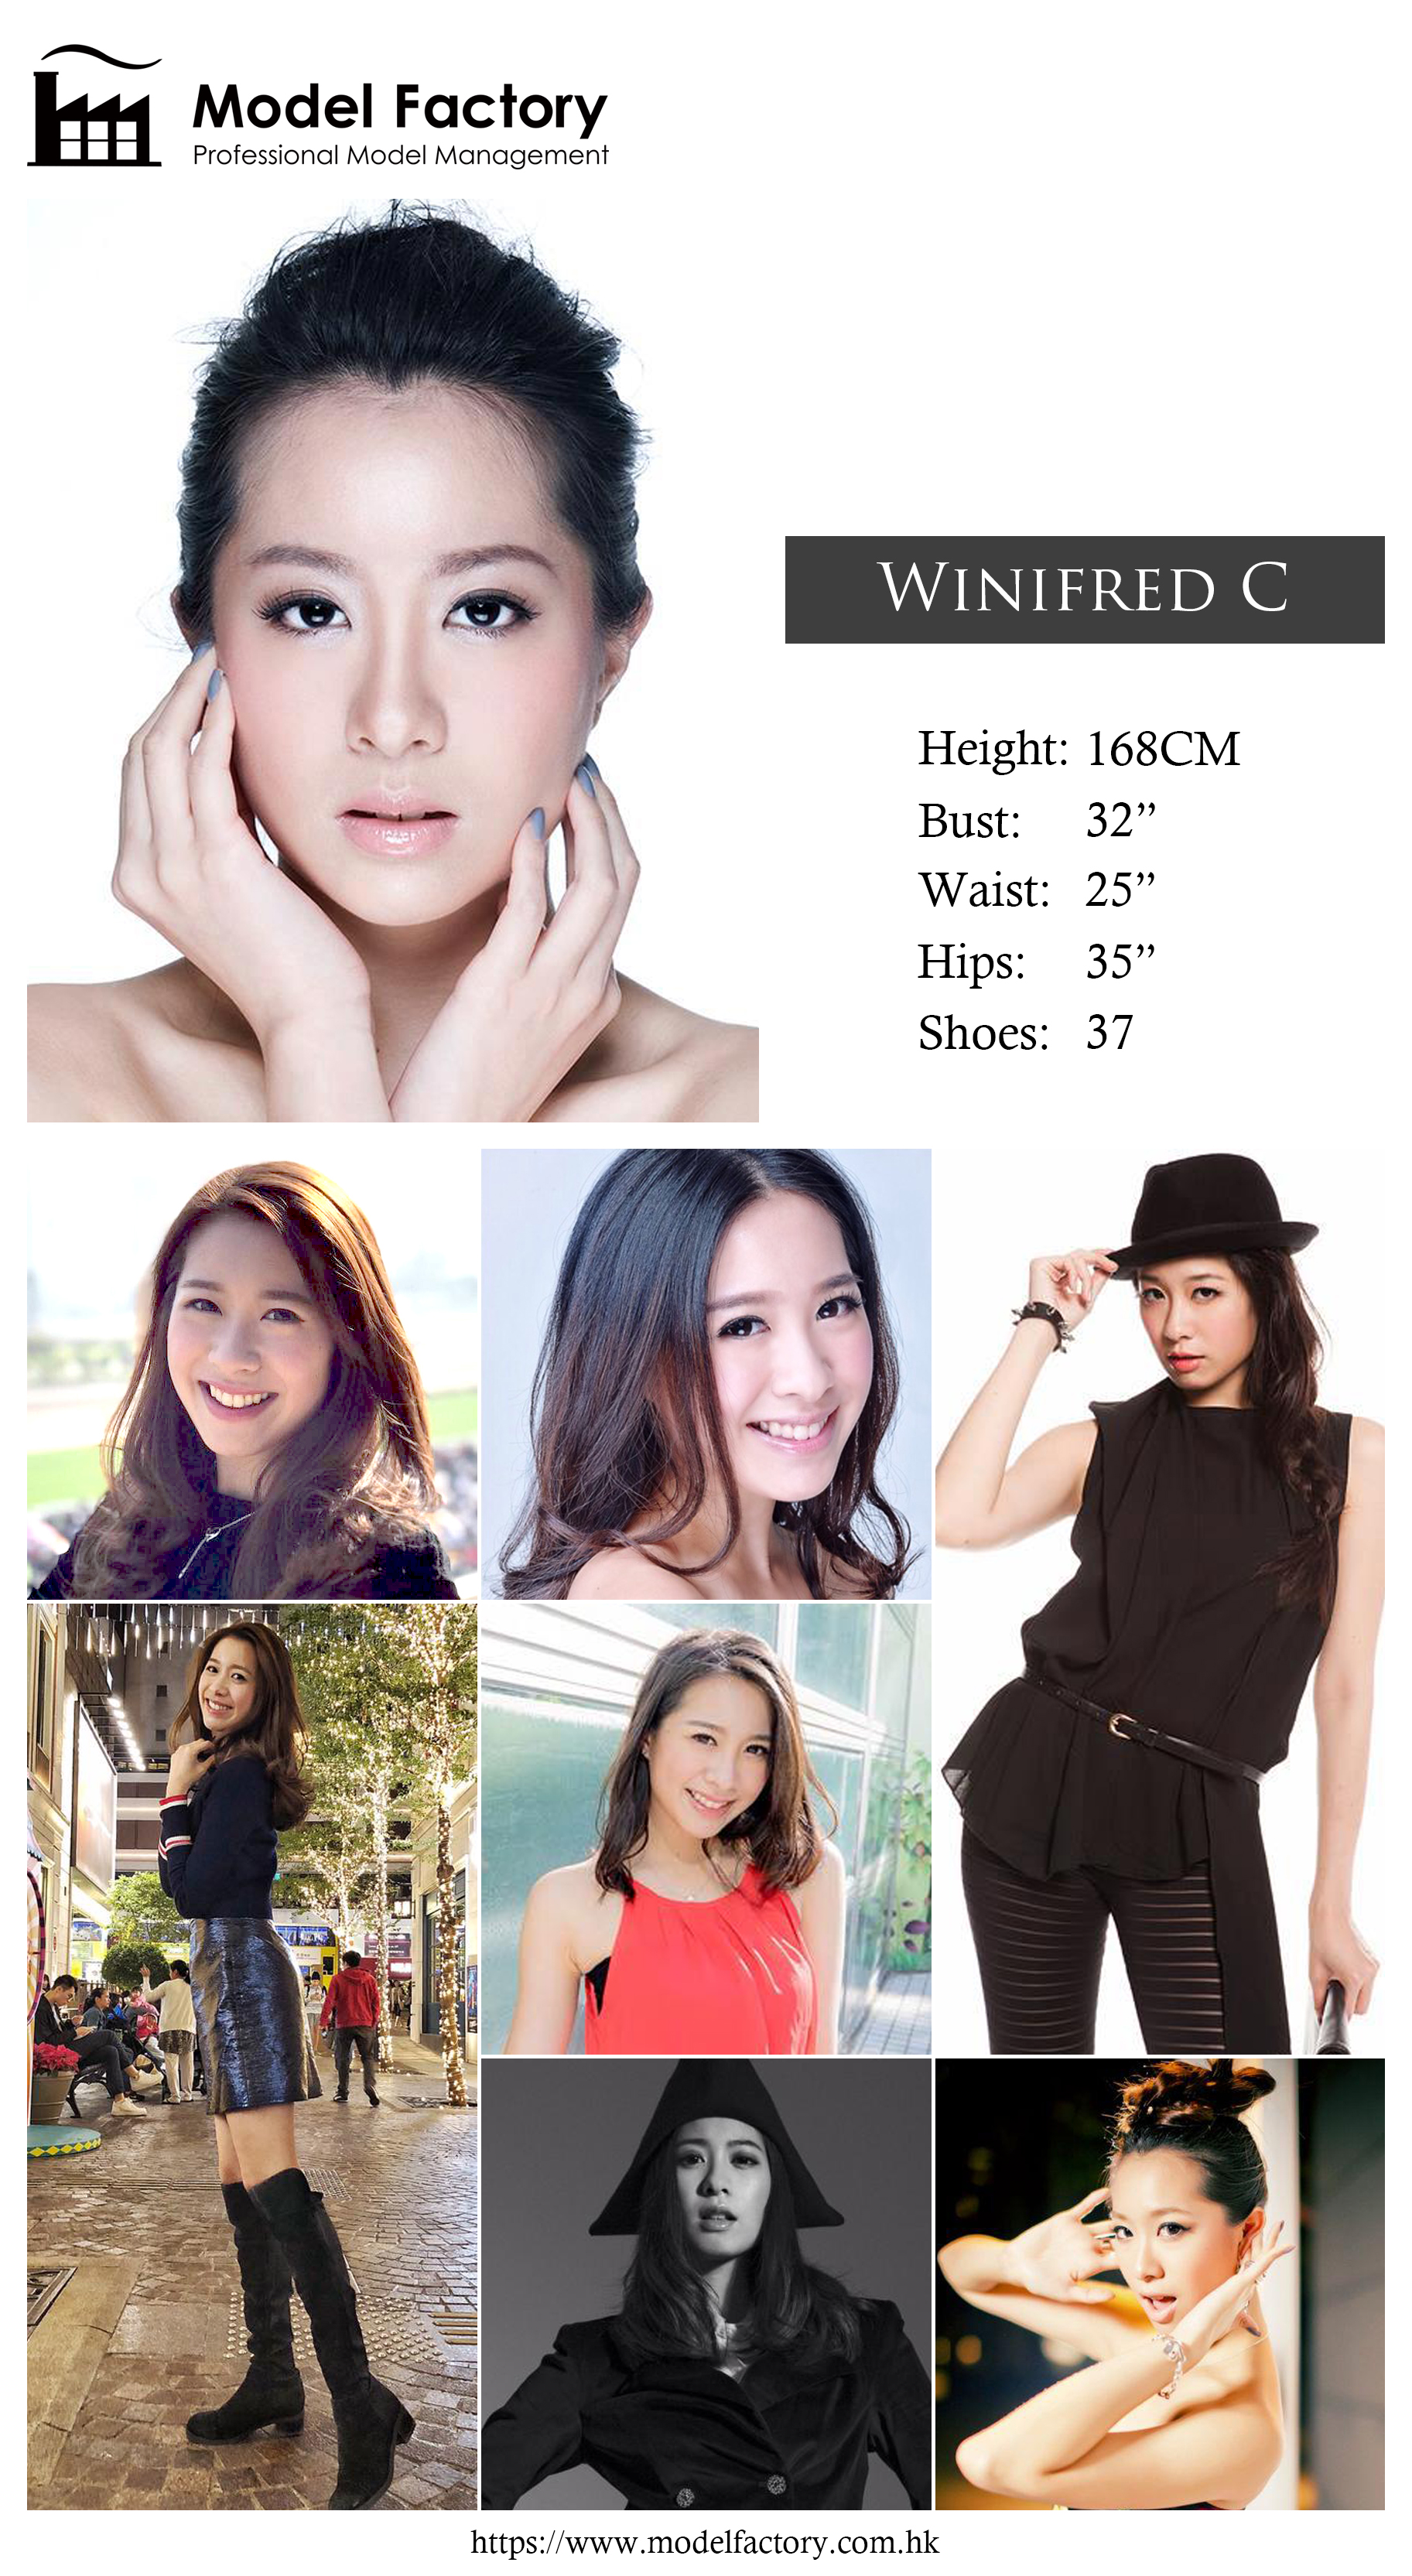 Model Factory Hong Kong Female Model WinifredC